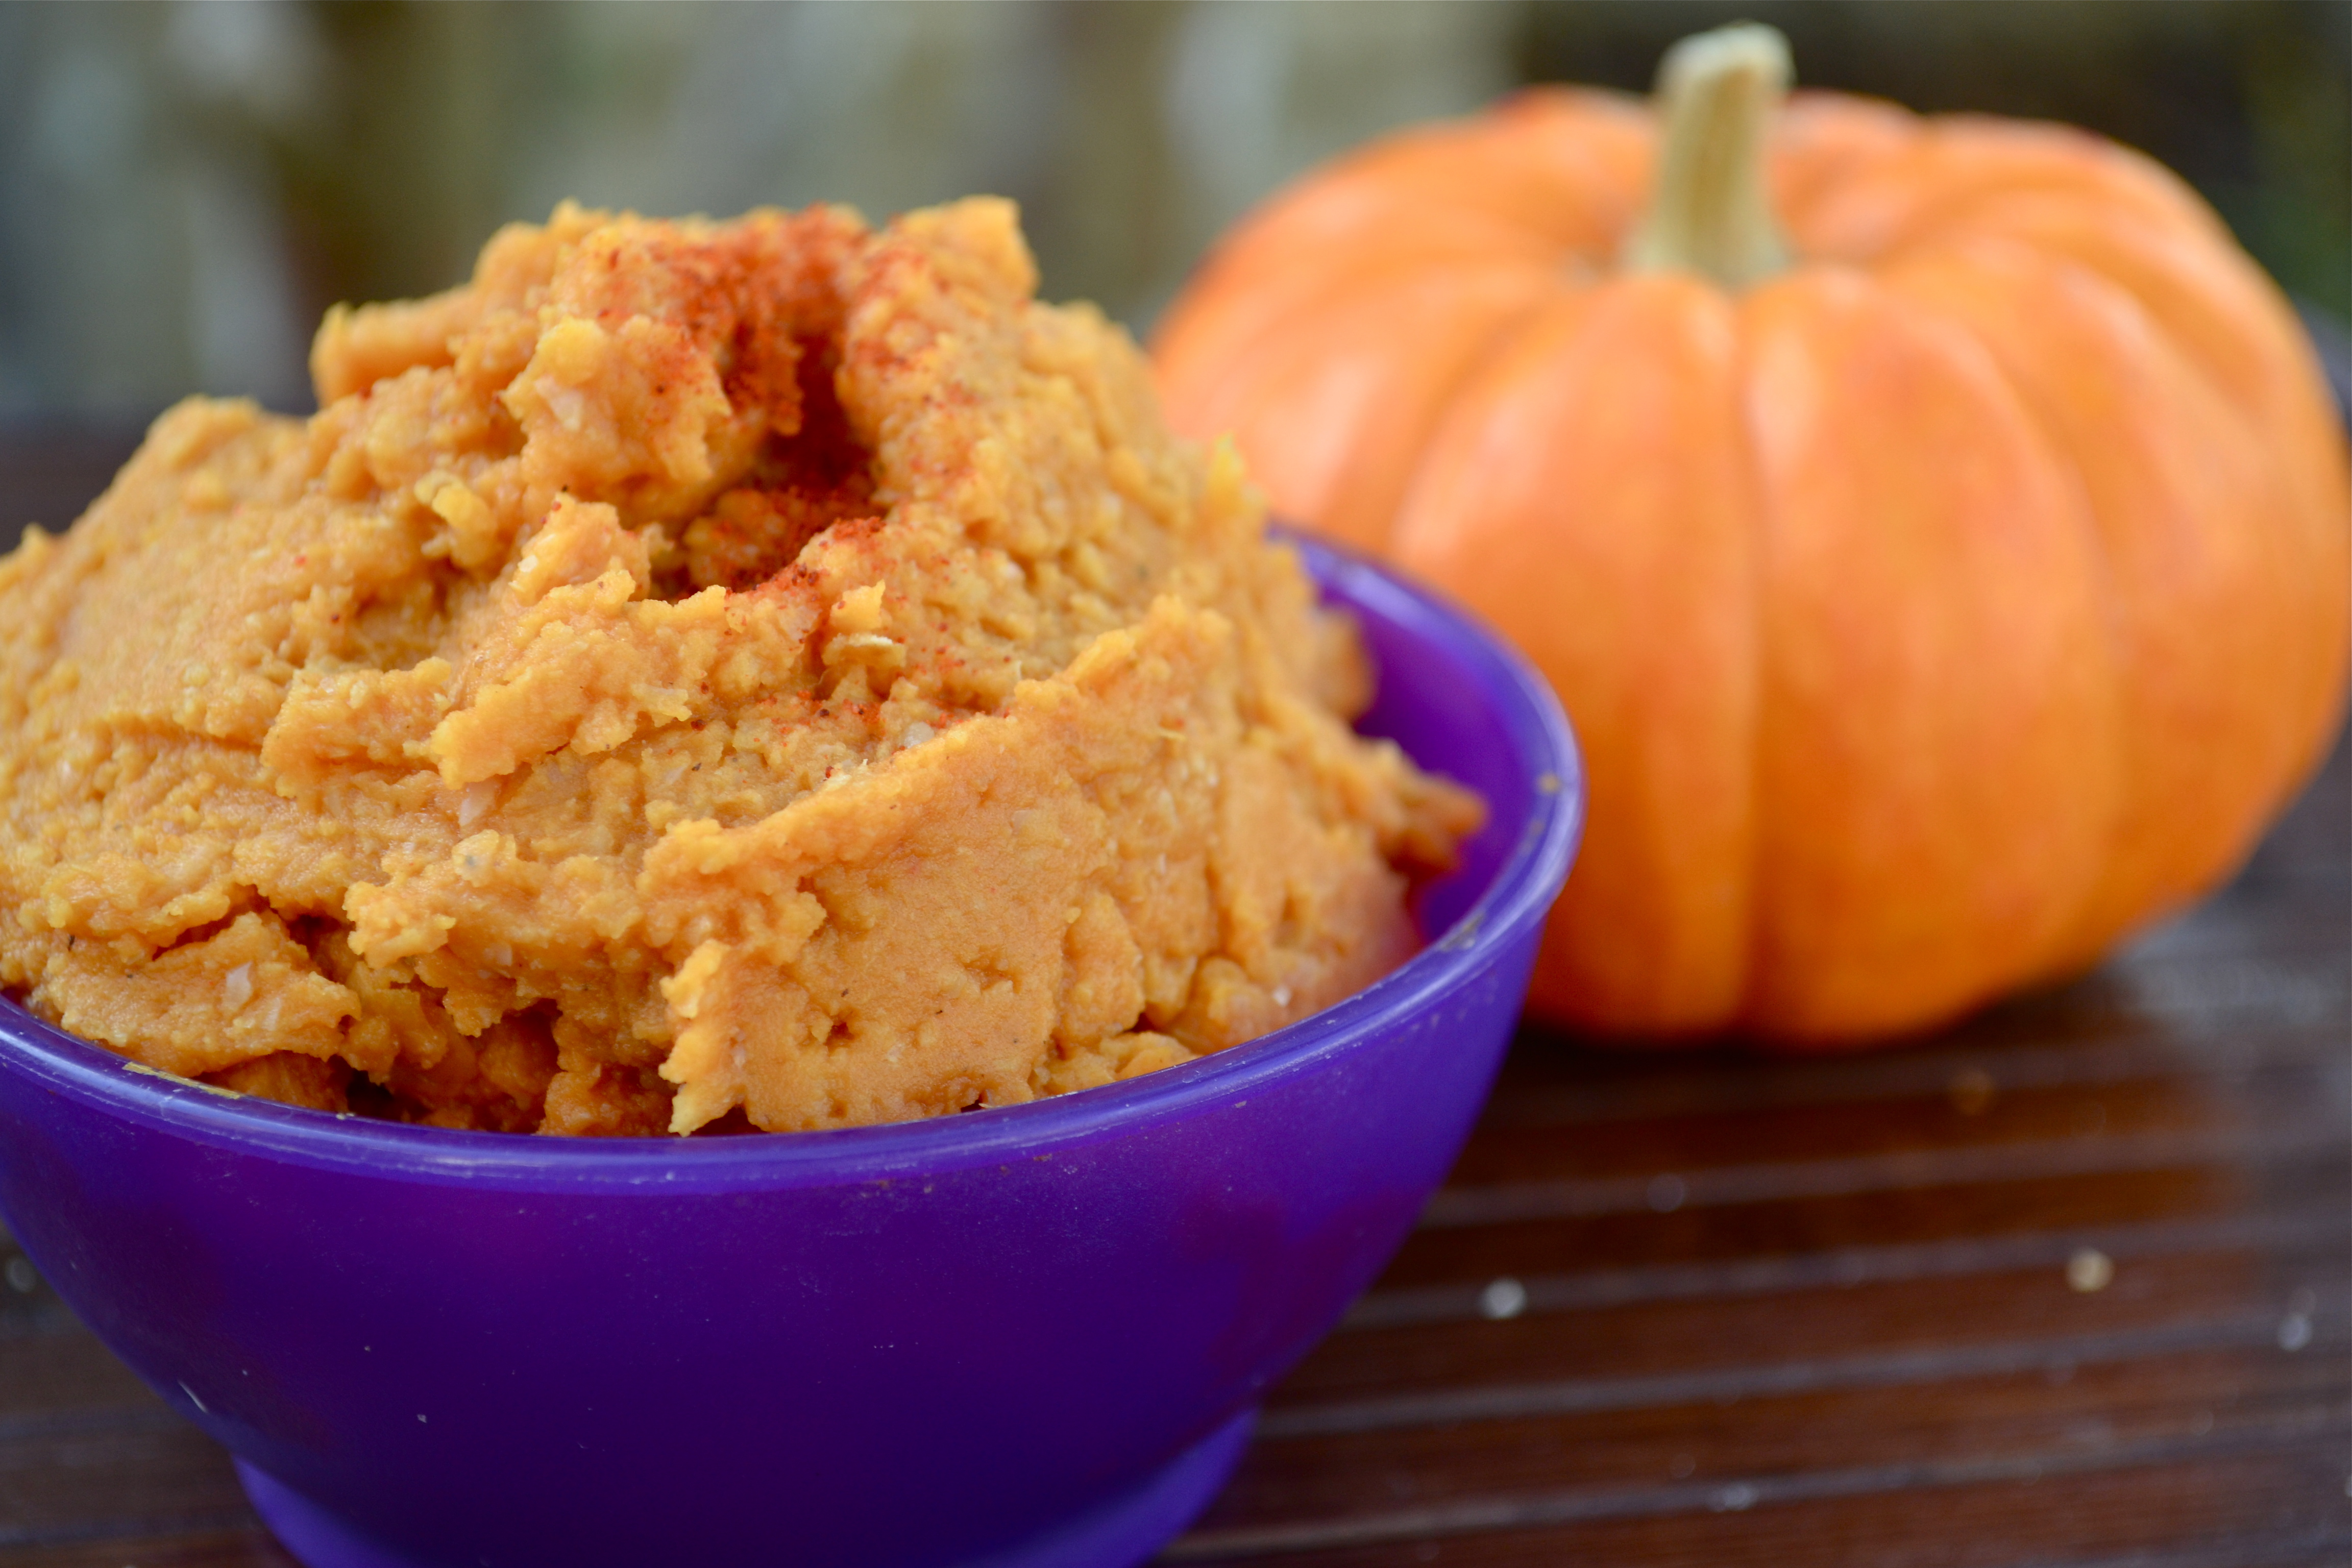 Say what?? Pumpkin hummus? Pumpkin in a savory Yes you read that right ...